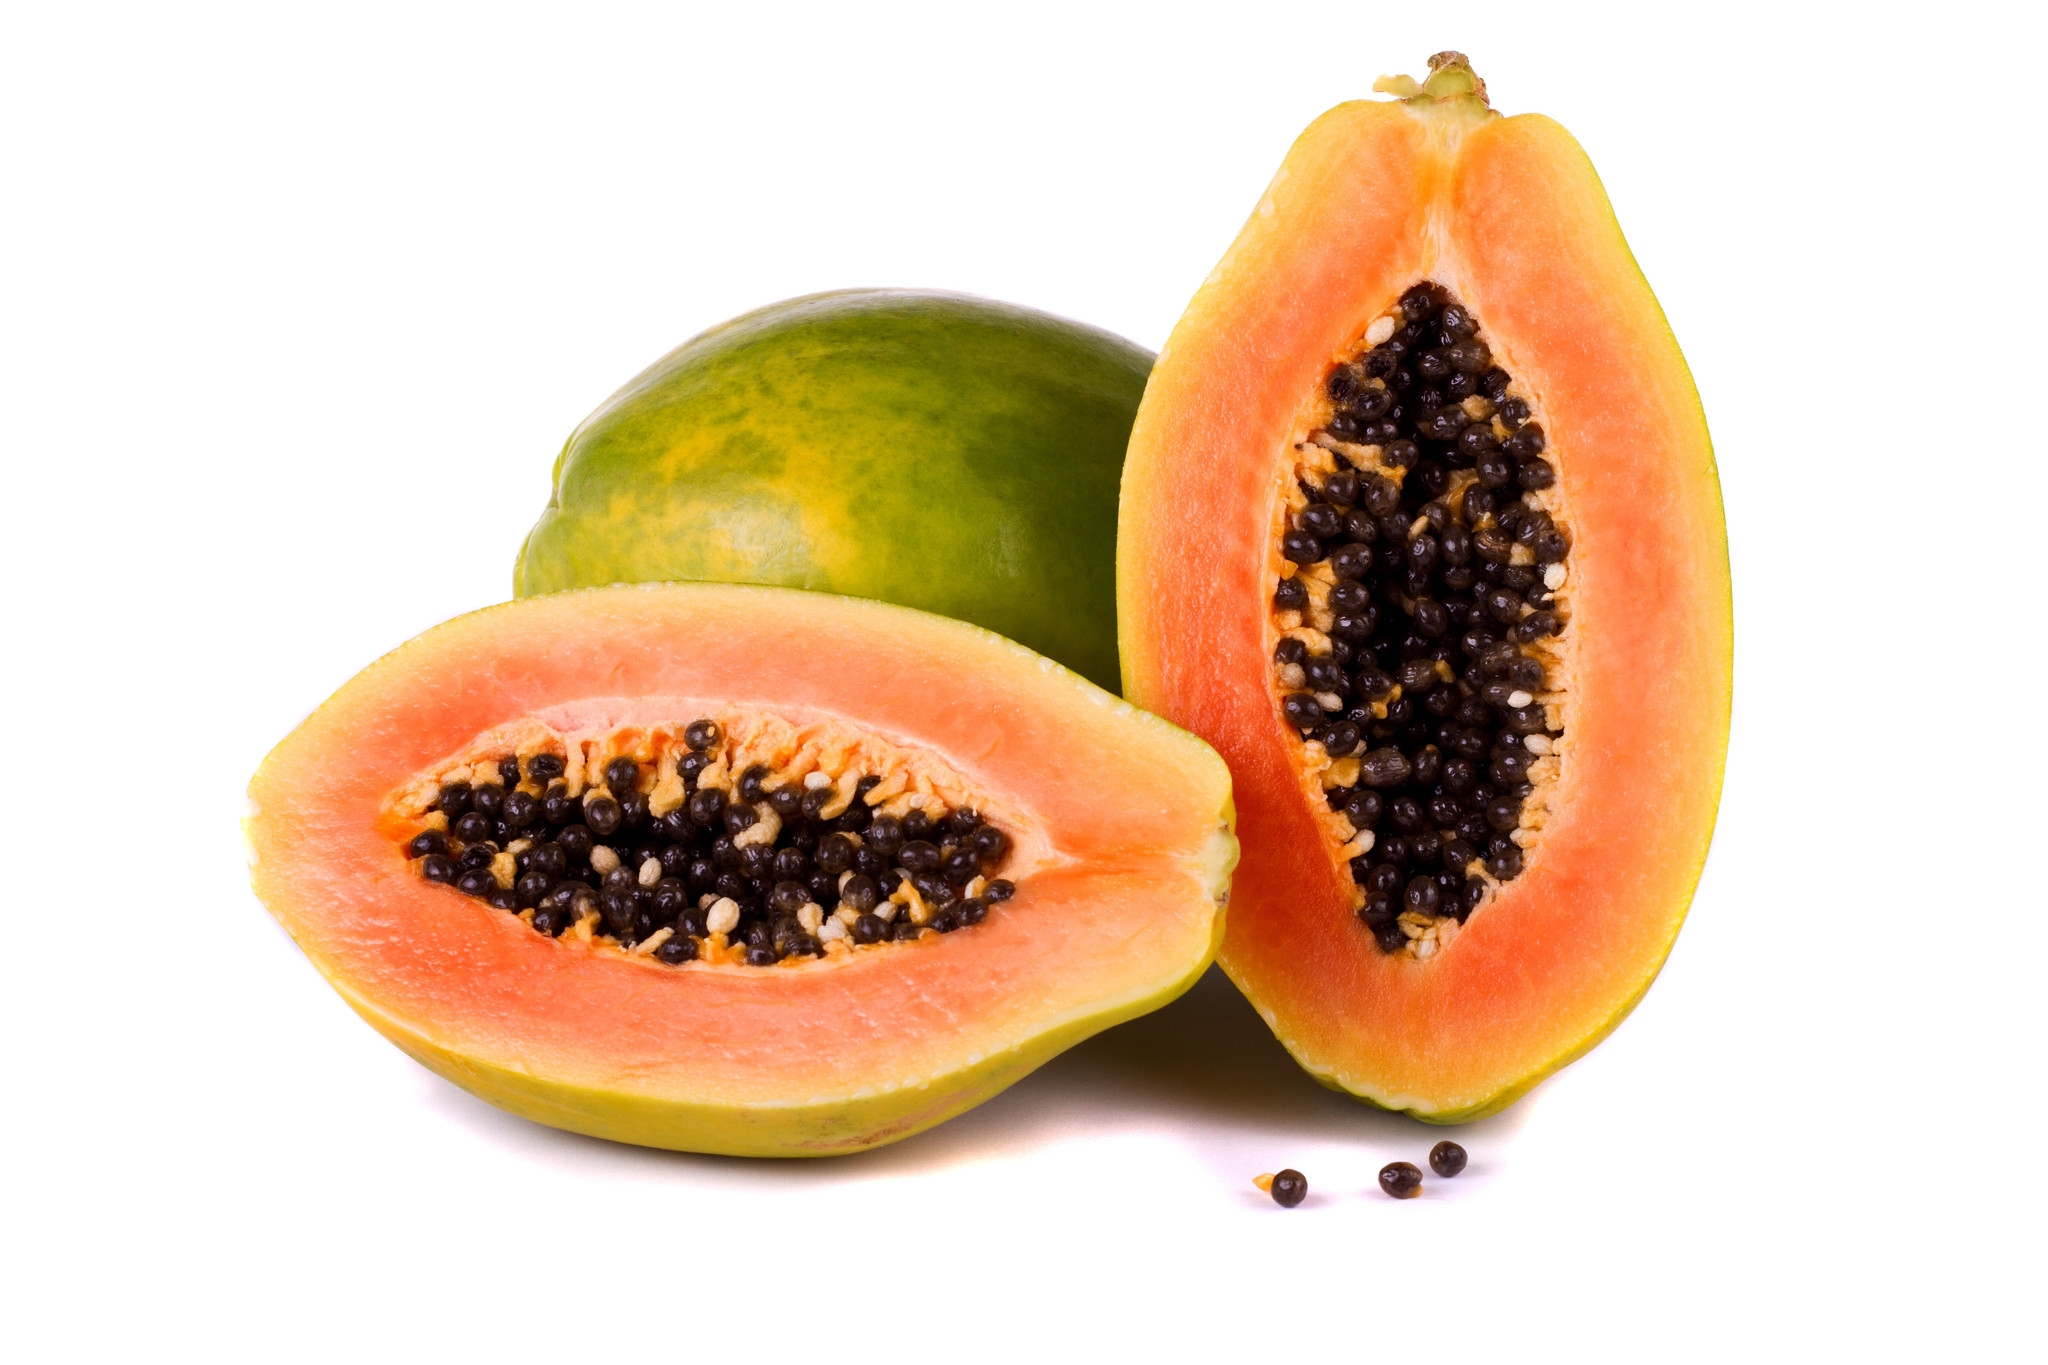 Papaya with Yellow Flesh 264.28 Kb